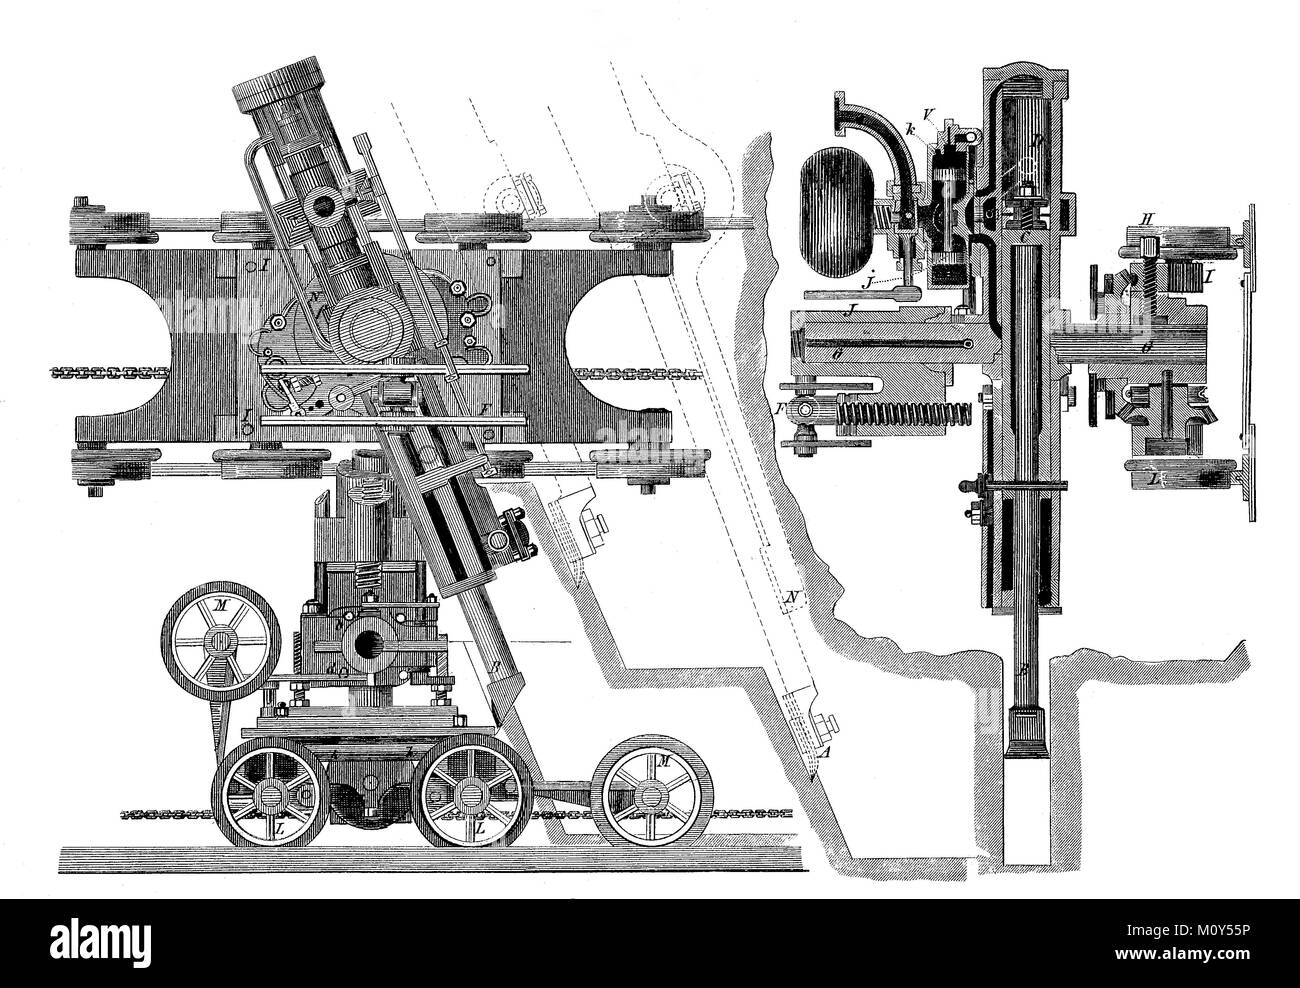 Construction of an improved machine that processes coal and ore, digital improved file of a original print of the Stock Photo